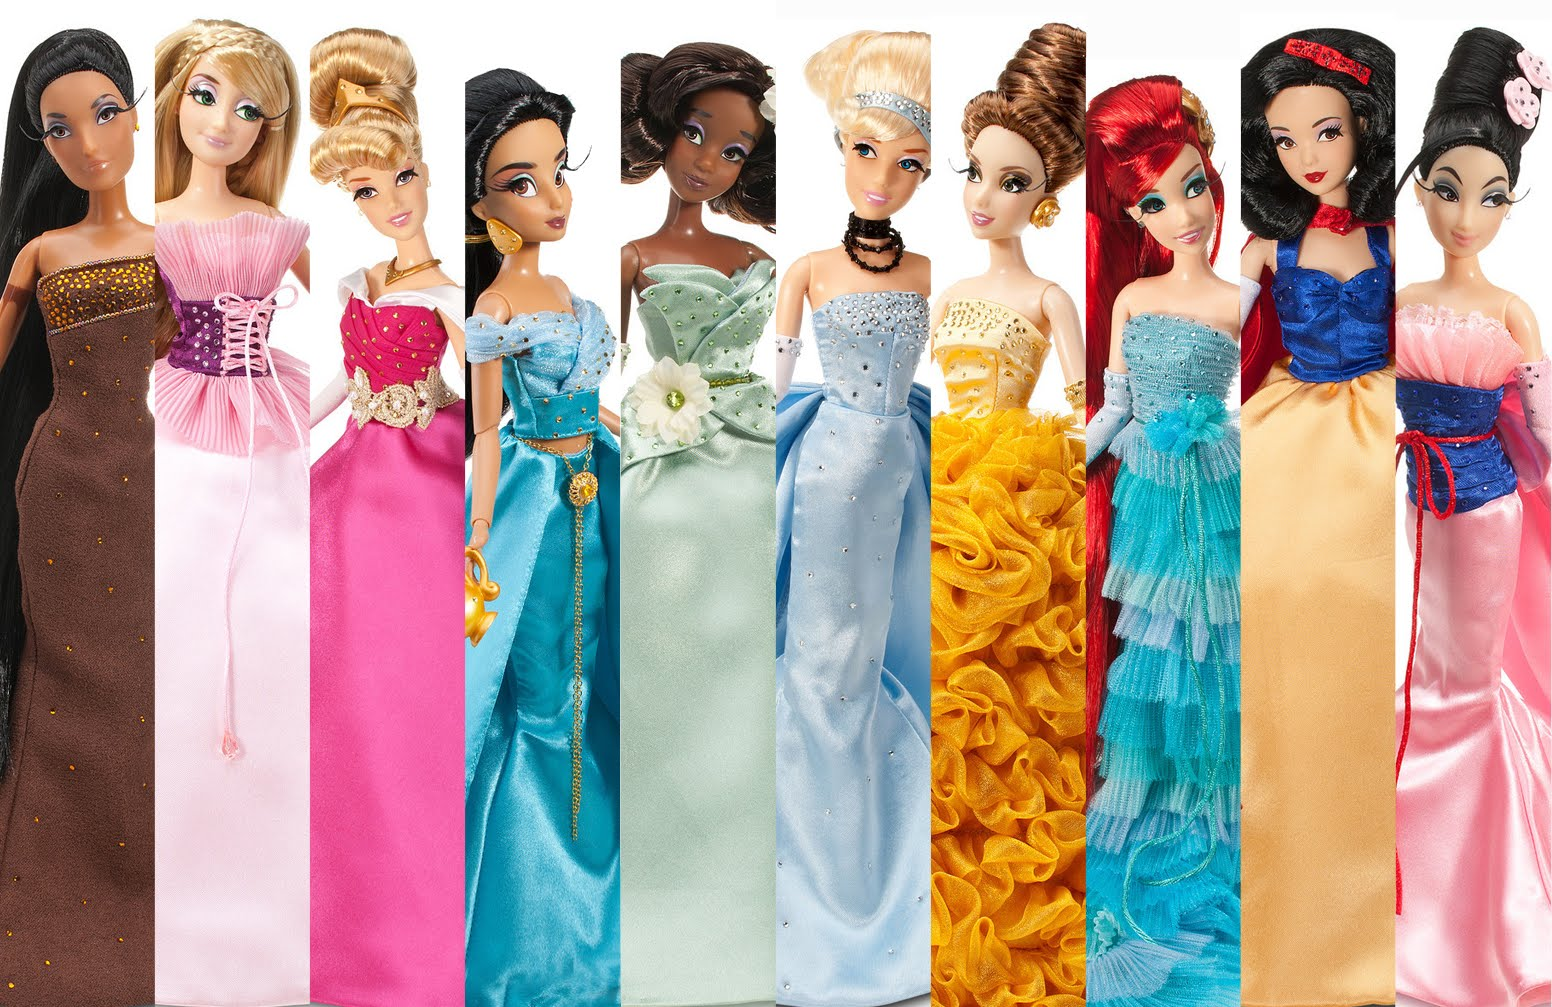 Modern Princess Prom Dress Up Games - Gown And Dress Gallery